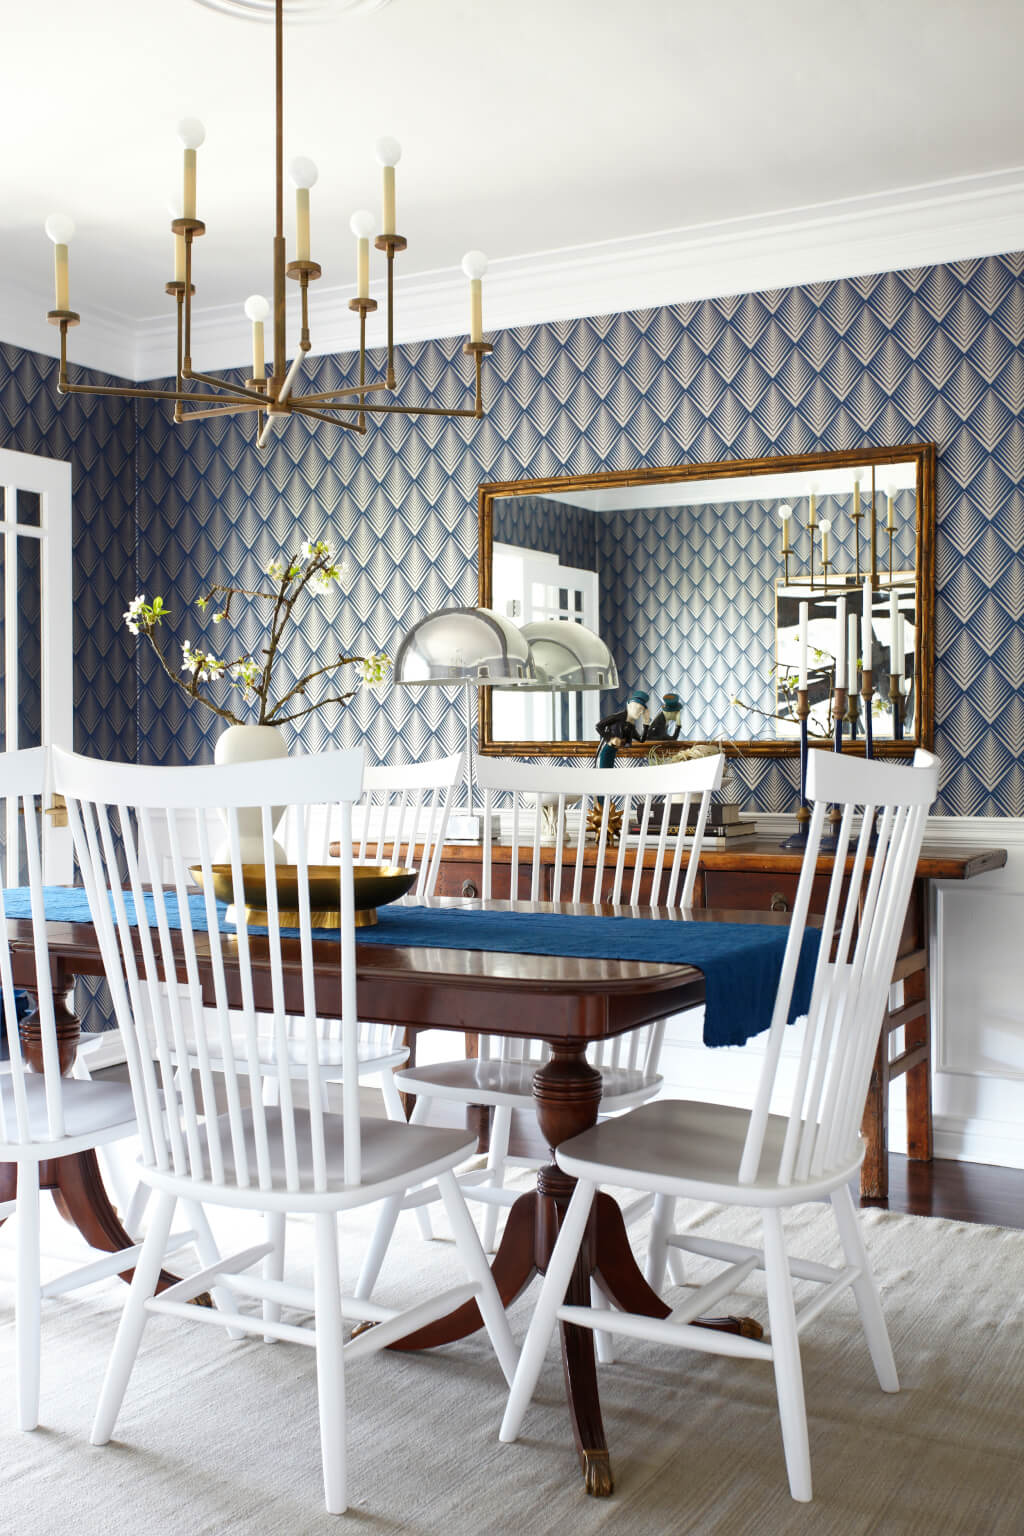 Dining Room Rules The Cheat Sheet You've Been Waiting For 1